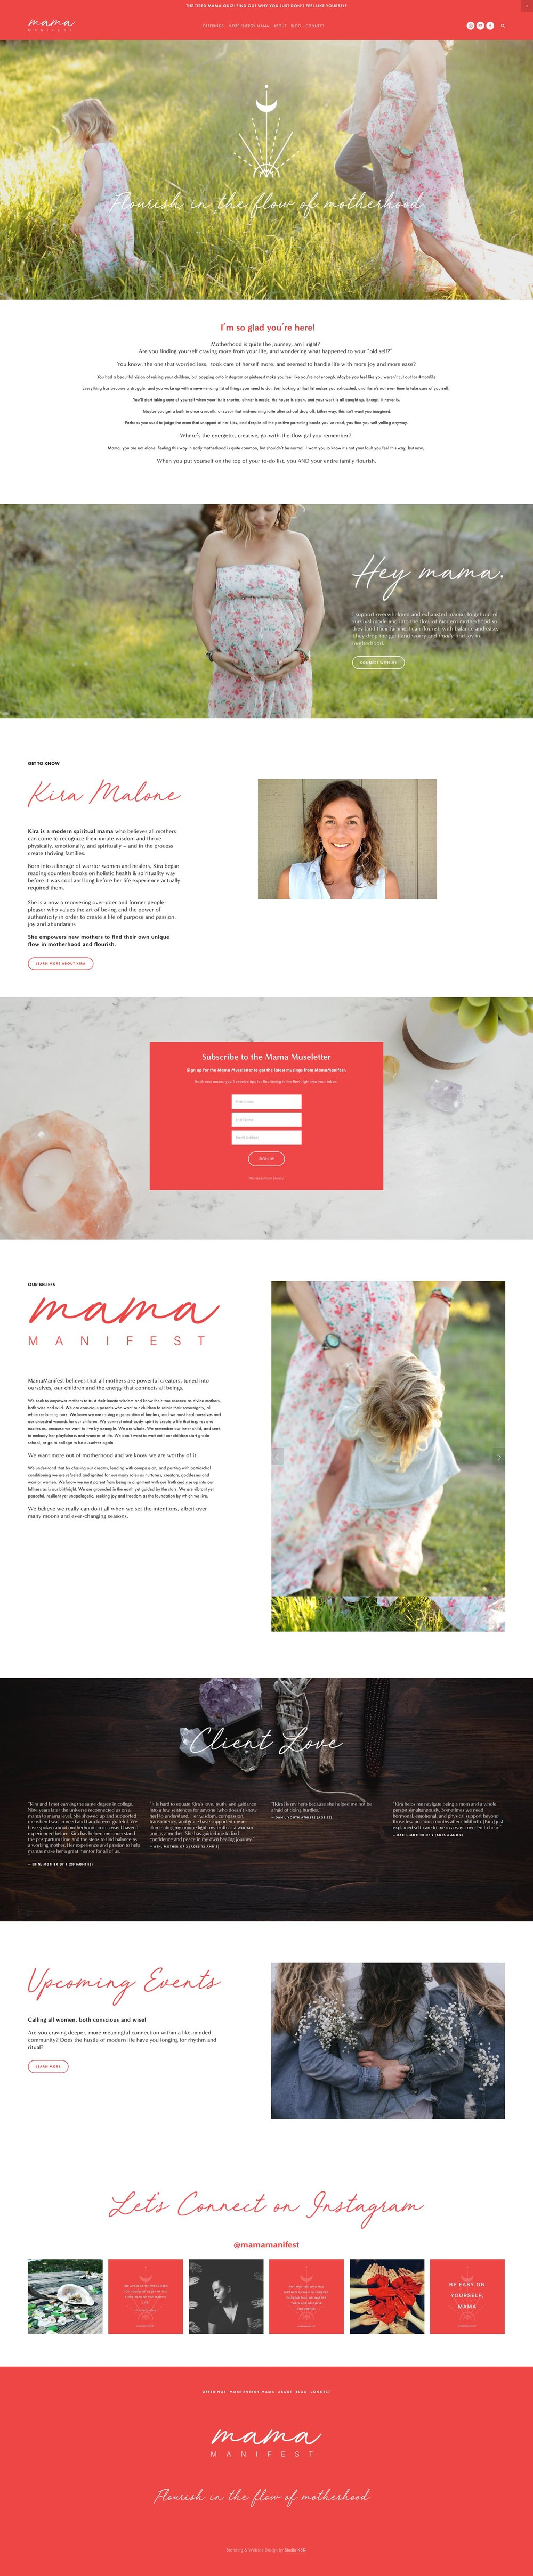 MamaManifest-Website.jpg